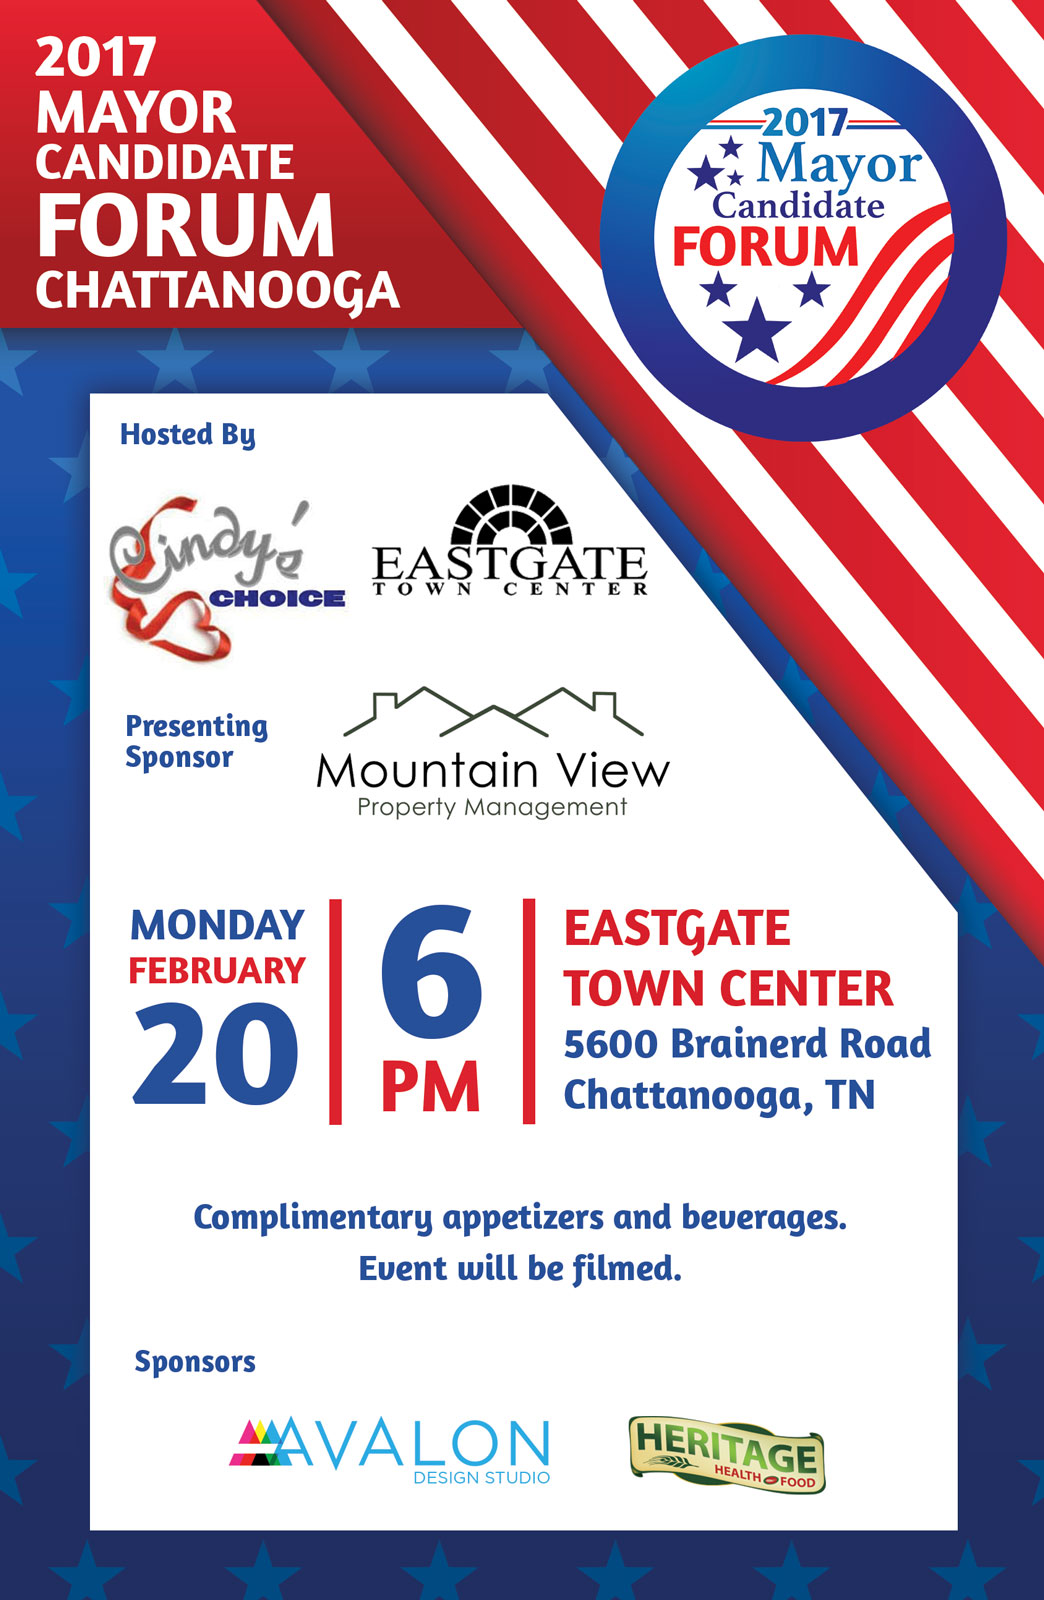 Eastgate Town Center - Chattanooga 2017 Mayor Candidate Forum Event